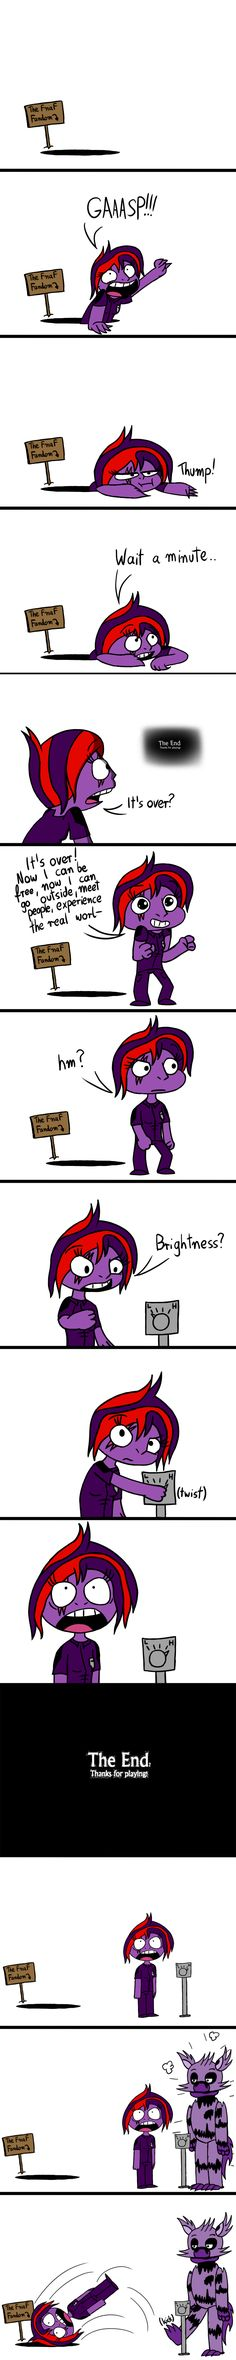 Me Right Now [FnaF Comic] by Kana-The-Drifter on DeviantArt